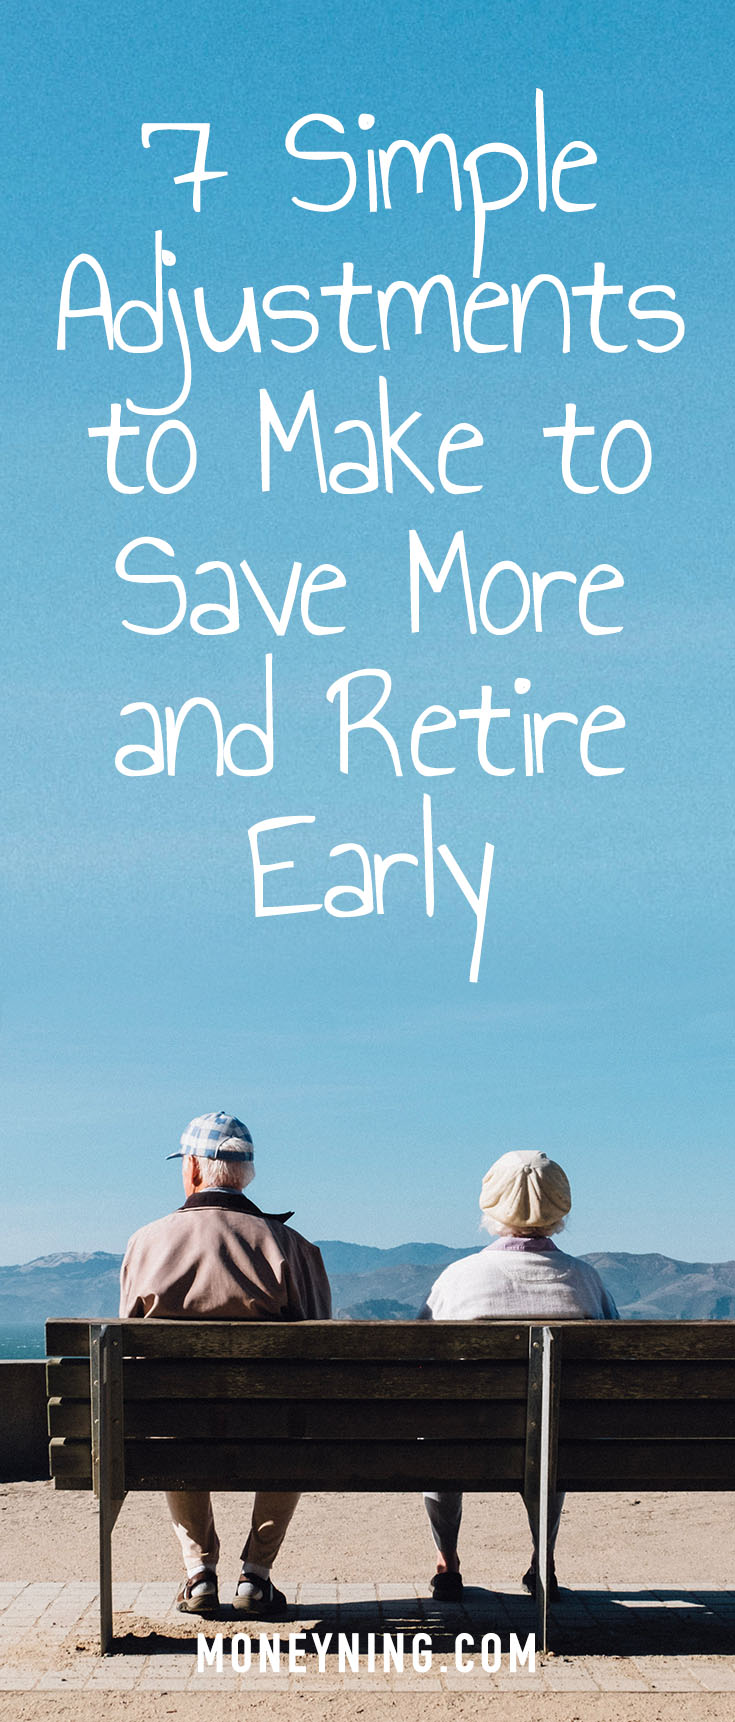 save and retire early